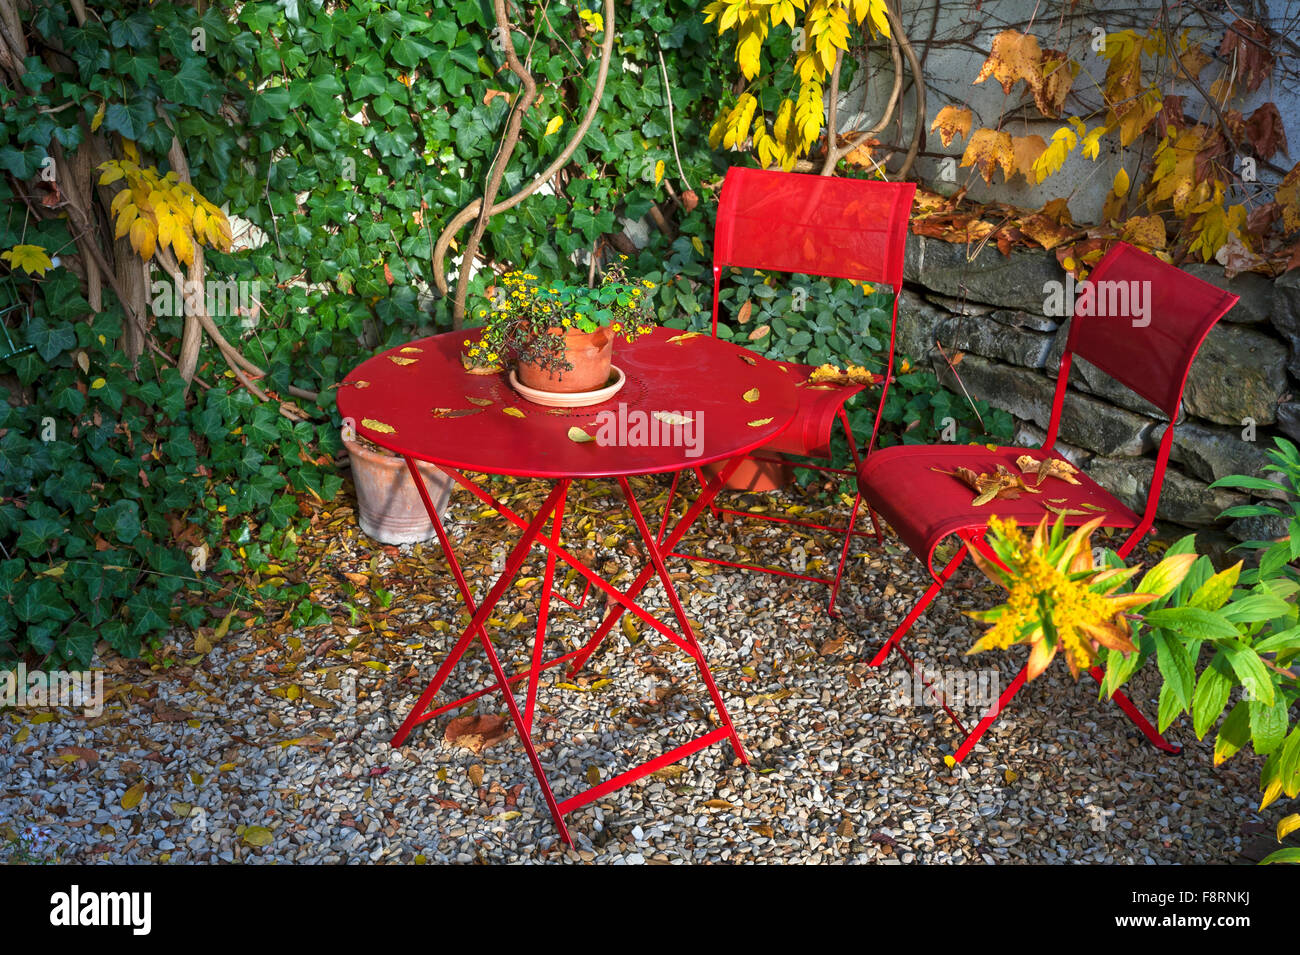 Red Patio Chairs Patio With Red Garden Furniture In Autumn Middle